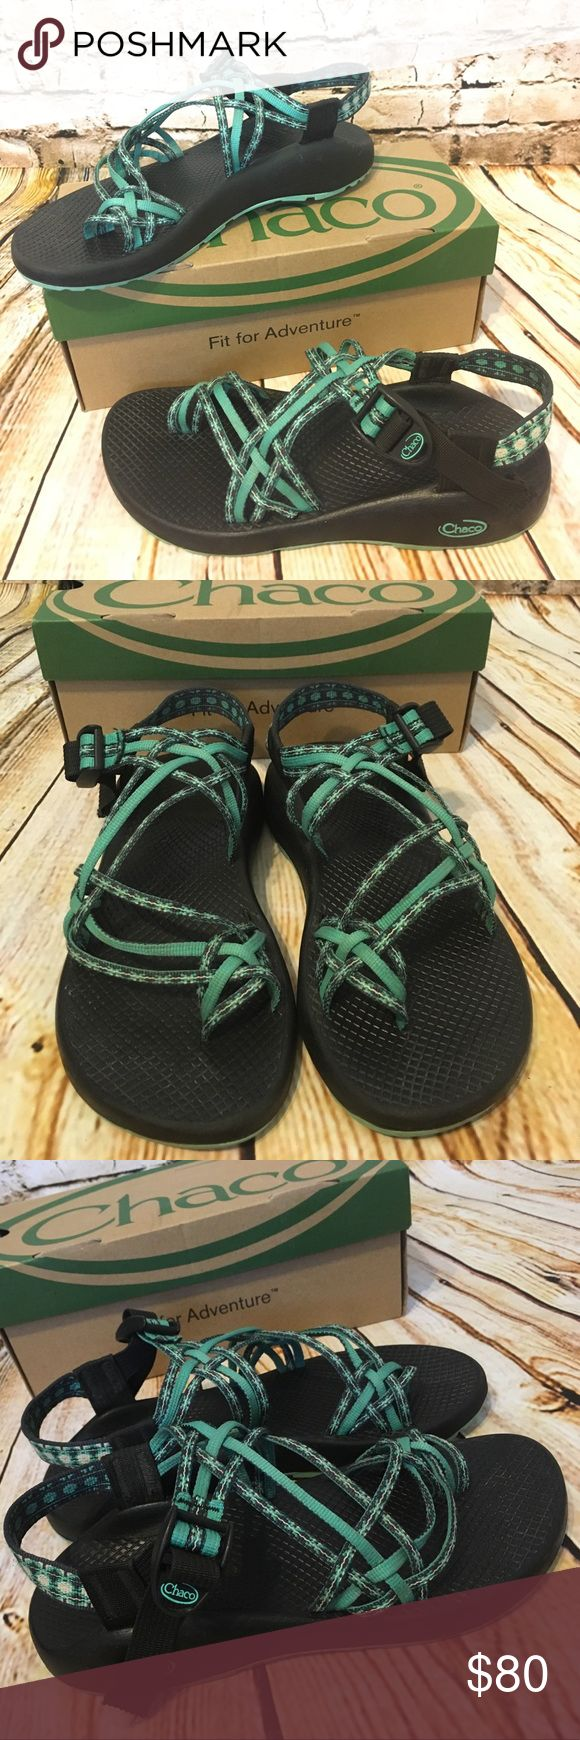 Chacos US women's size 8, Chukwalla Aqua, EUC! Chaco brand Chacos sandals, US women's size 8. Authentic, not knock off! Excellent, gently loved condition. Style and coloring is Chukwalla Aqua. Worn once for a total of about 4 hours and put back in box. Will include original box! Purchased new for $104.99 plus tax locally at a high end sporting goods store. Bundle discount available! Chaco Shoes Sandals